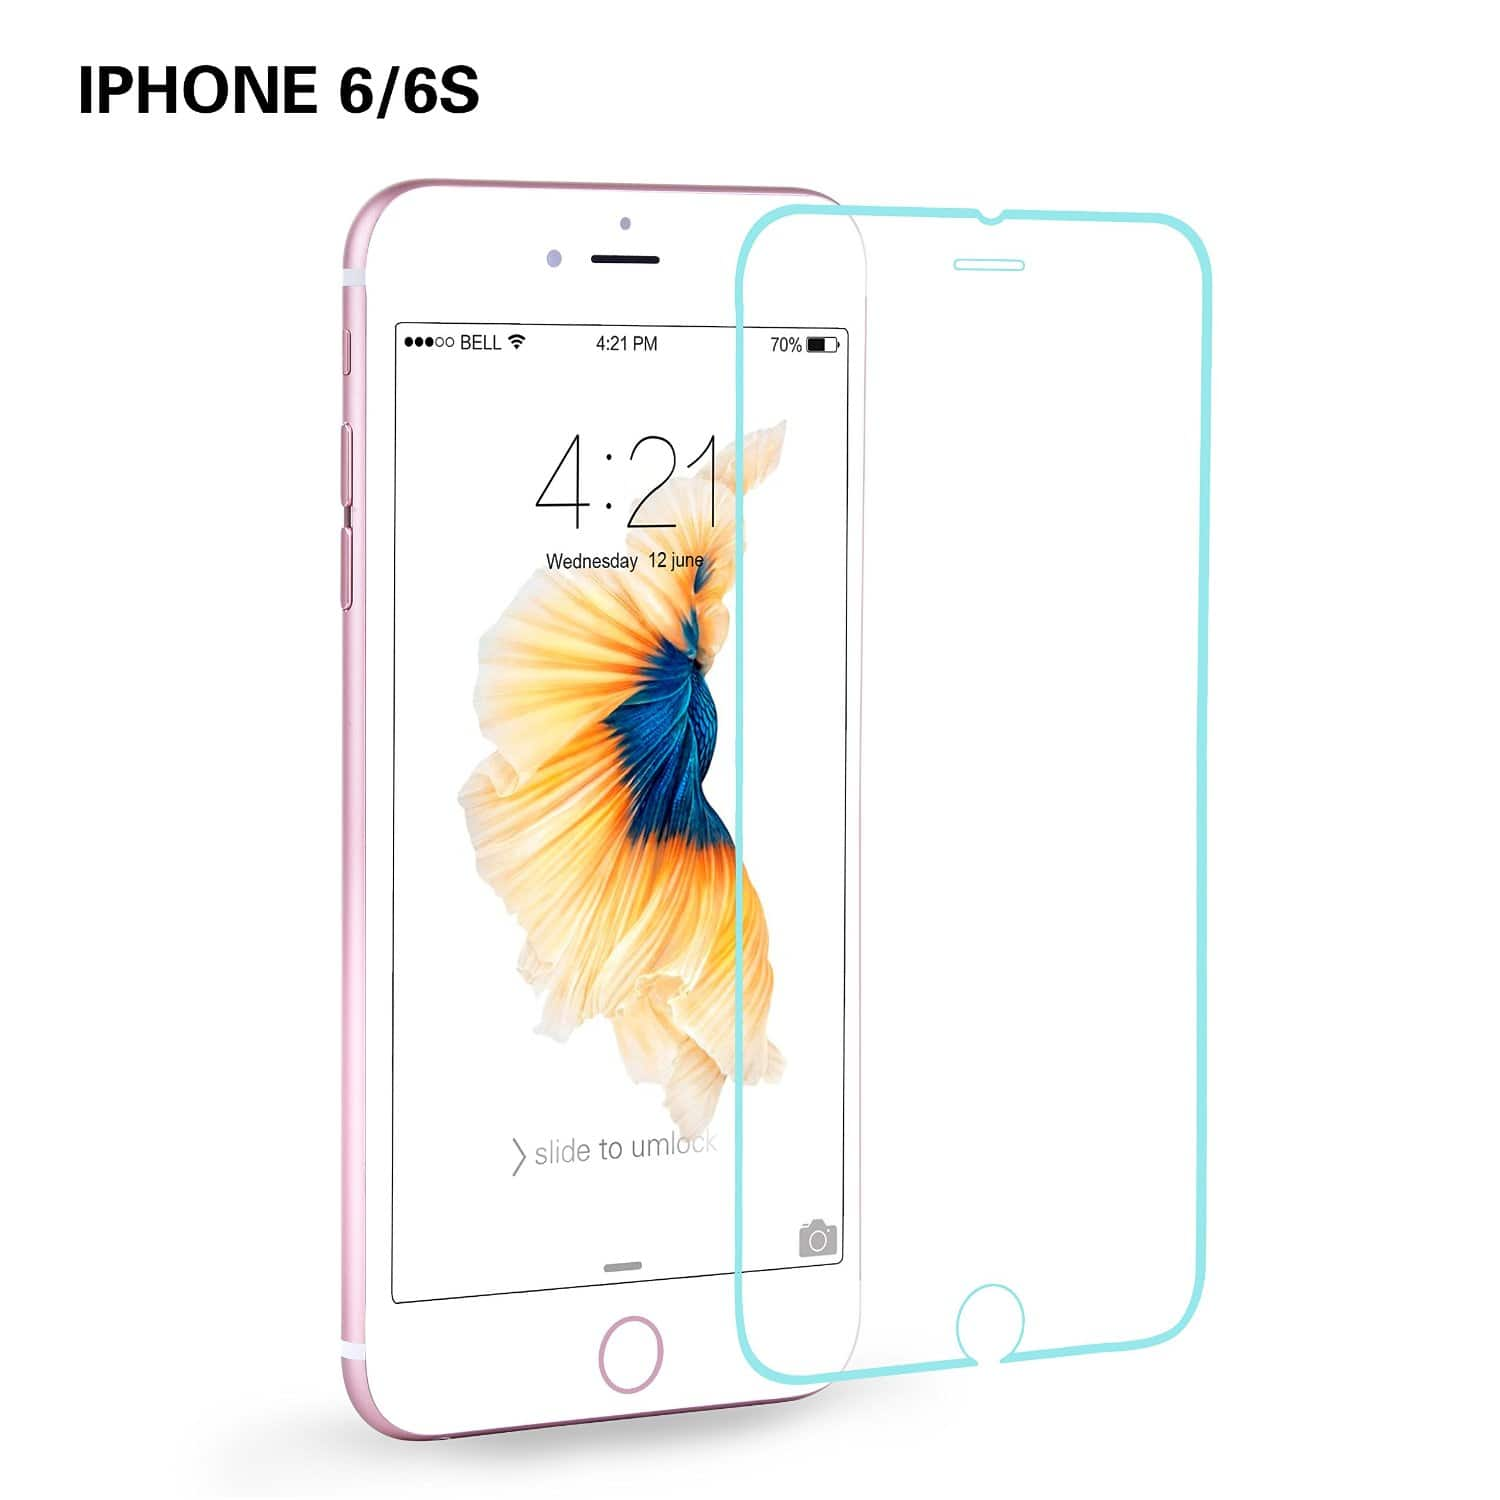 iphone 6S glass screen protector $0.99